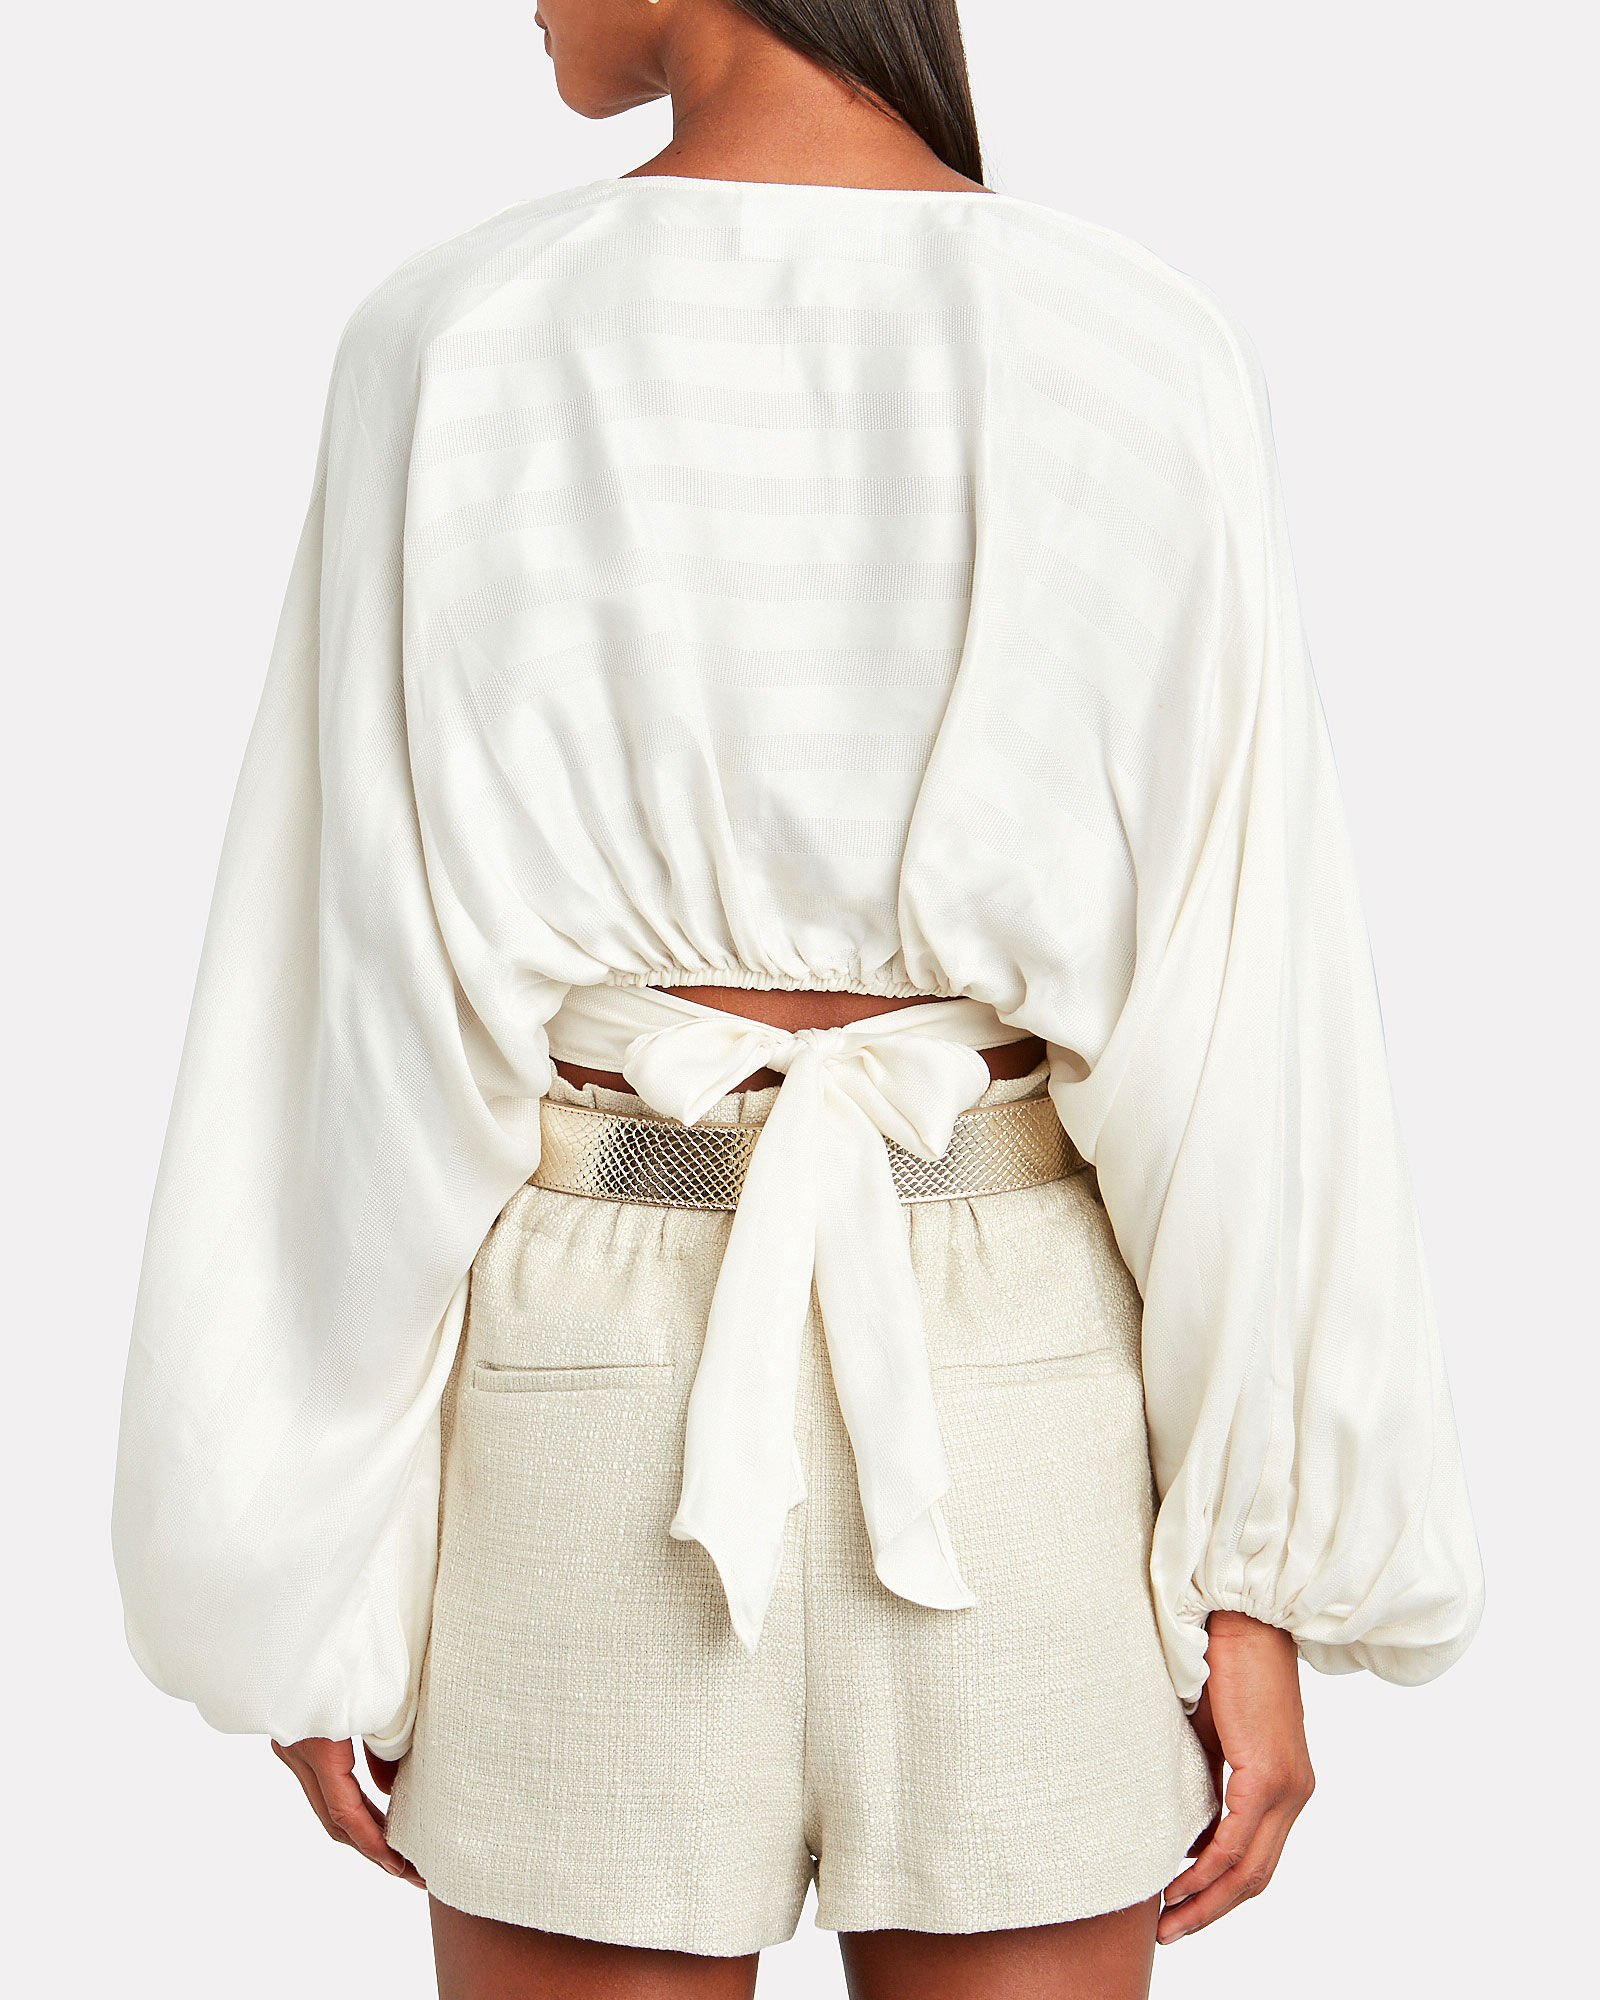 Voyager Striped Wrap Blouse, IVORY, hi-res